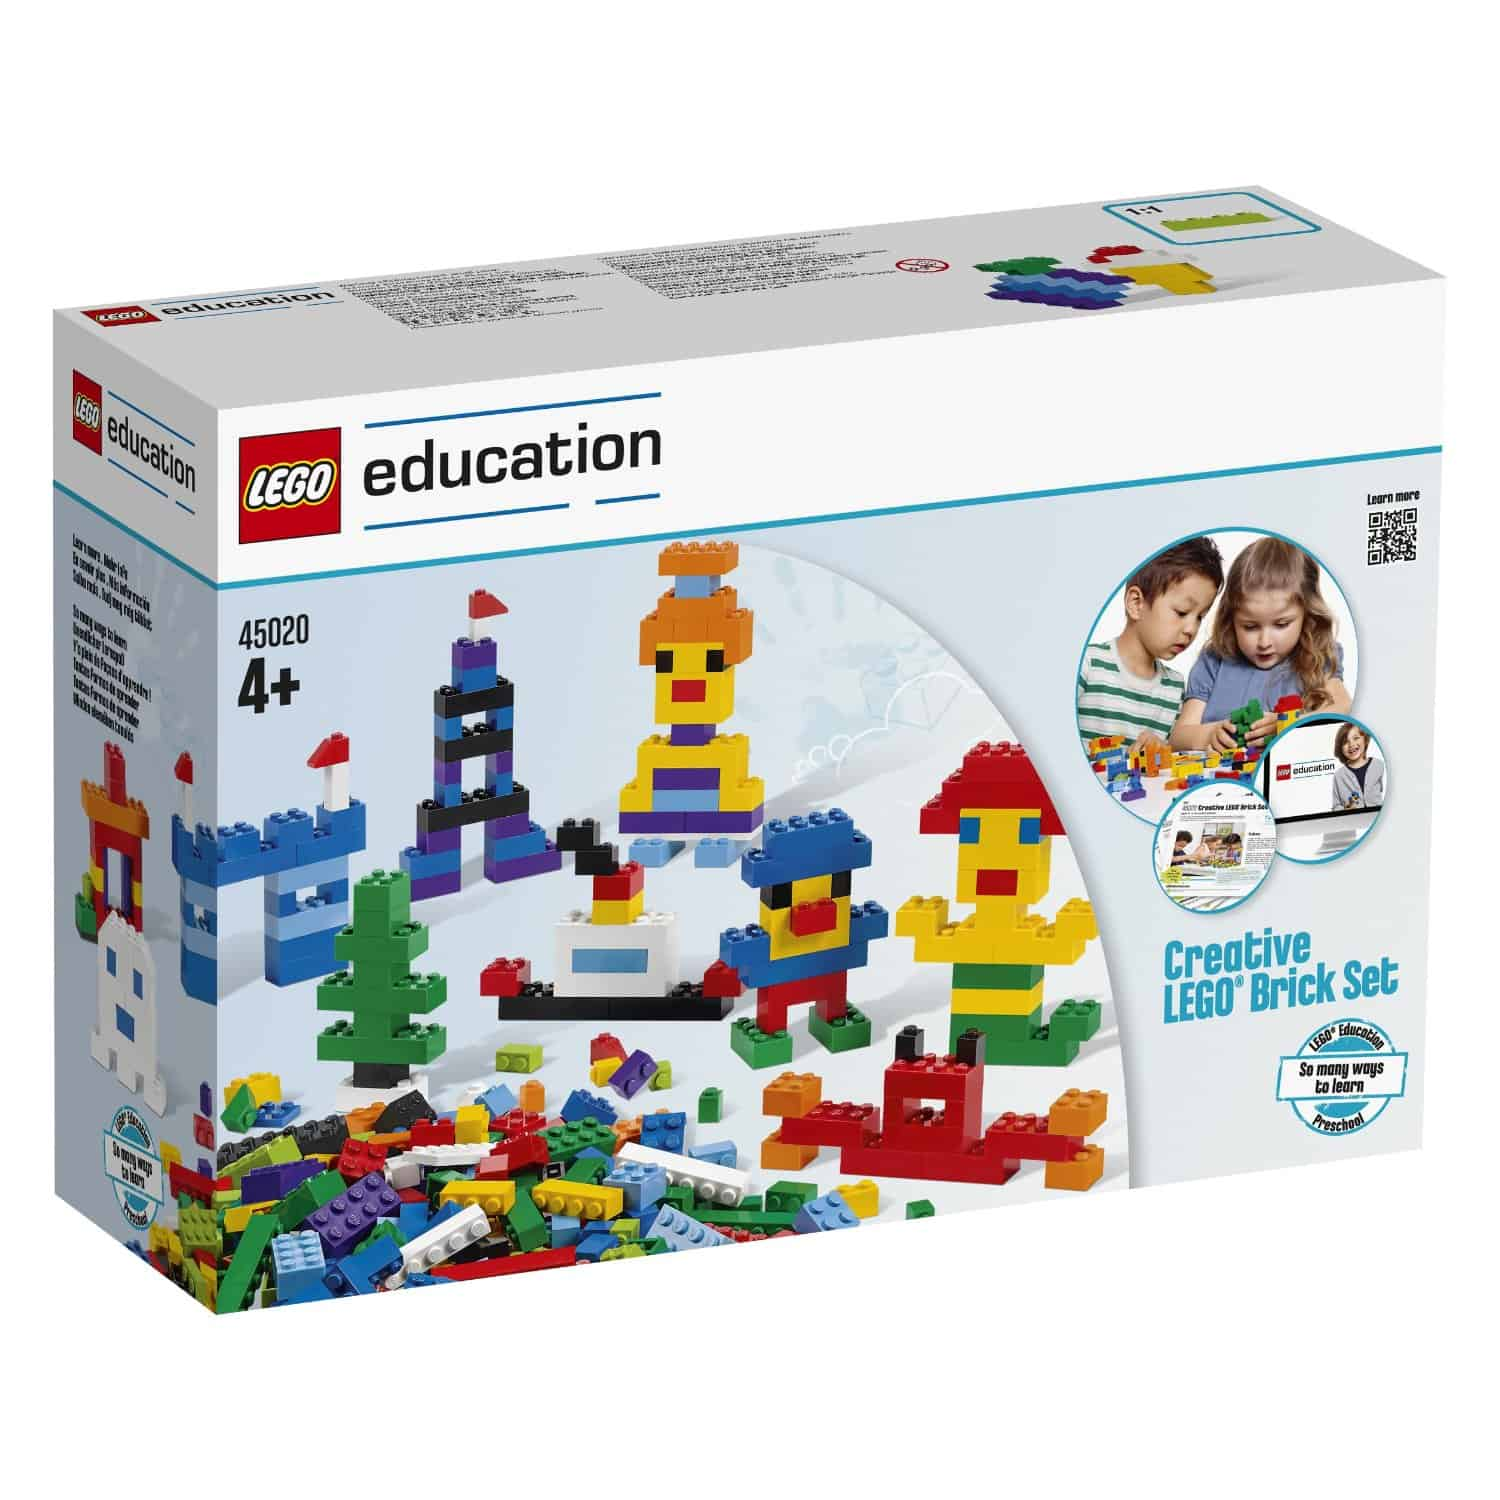 Lego Education 1000 Piece Creative Brick Set 35 Off